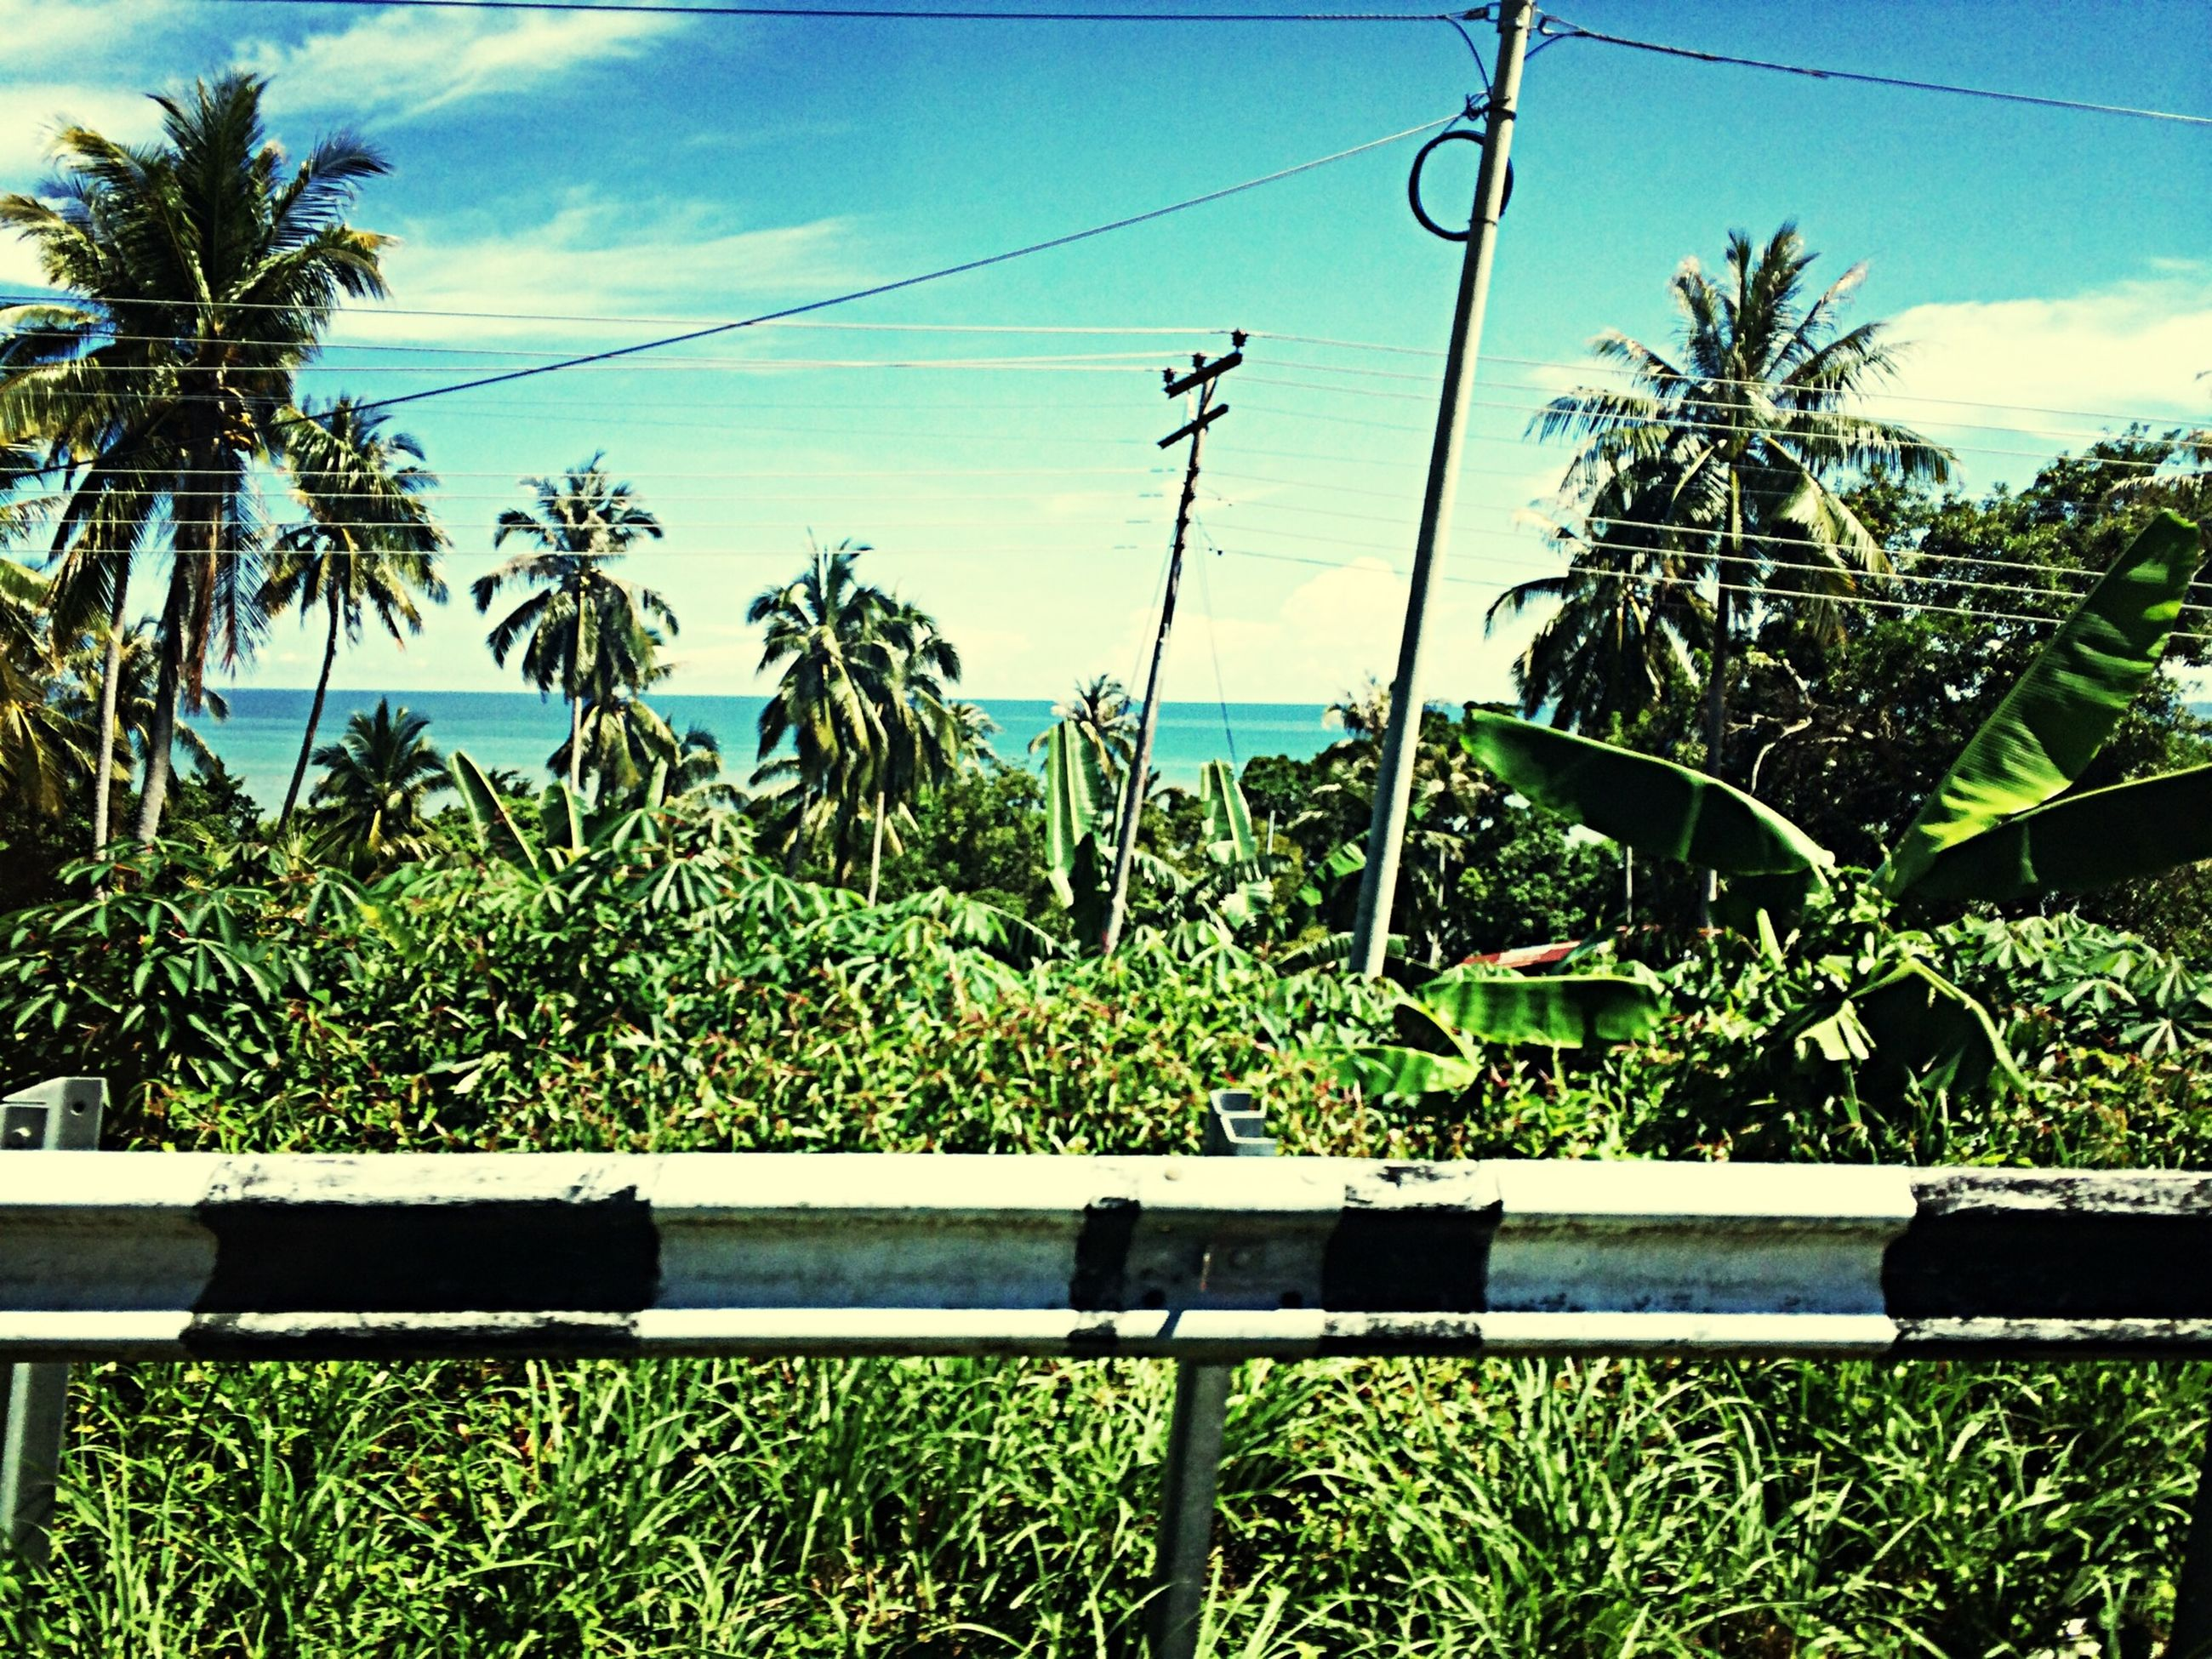 growth, plant, sky, sea, palm tree, horizon over water, green color, nature, tree, tranquility, tranquil scene, beauty in nature, blue, water, scenics, growing, green, grass, cloud, day